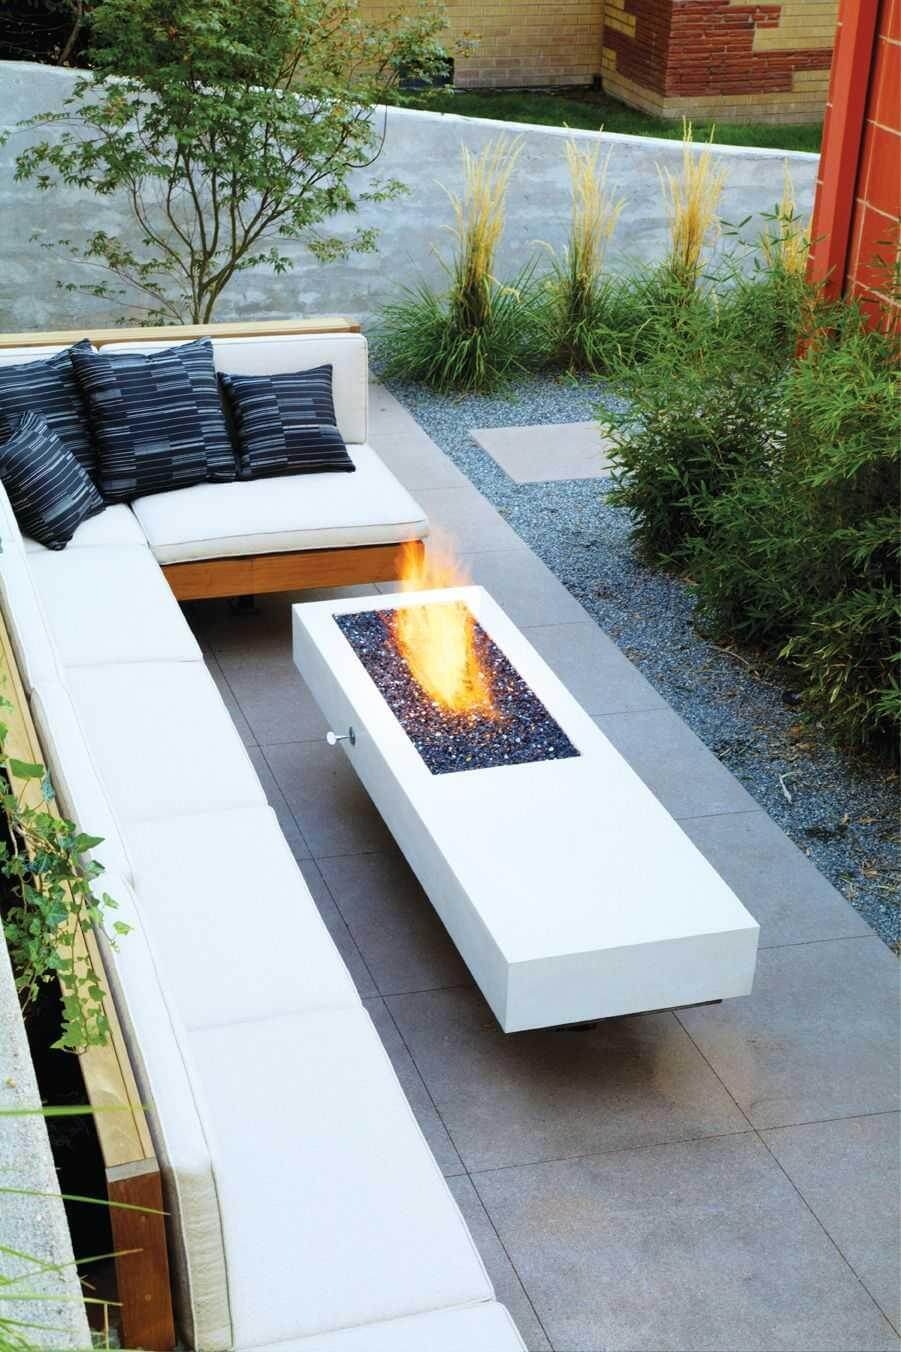 Fireplace to Light It Up